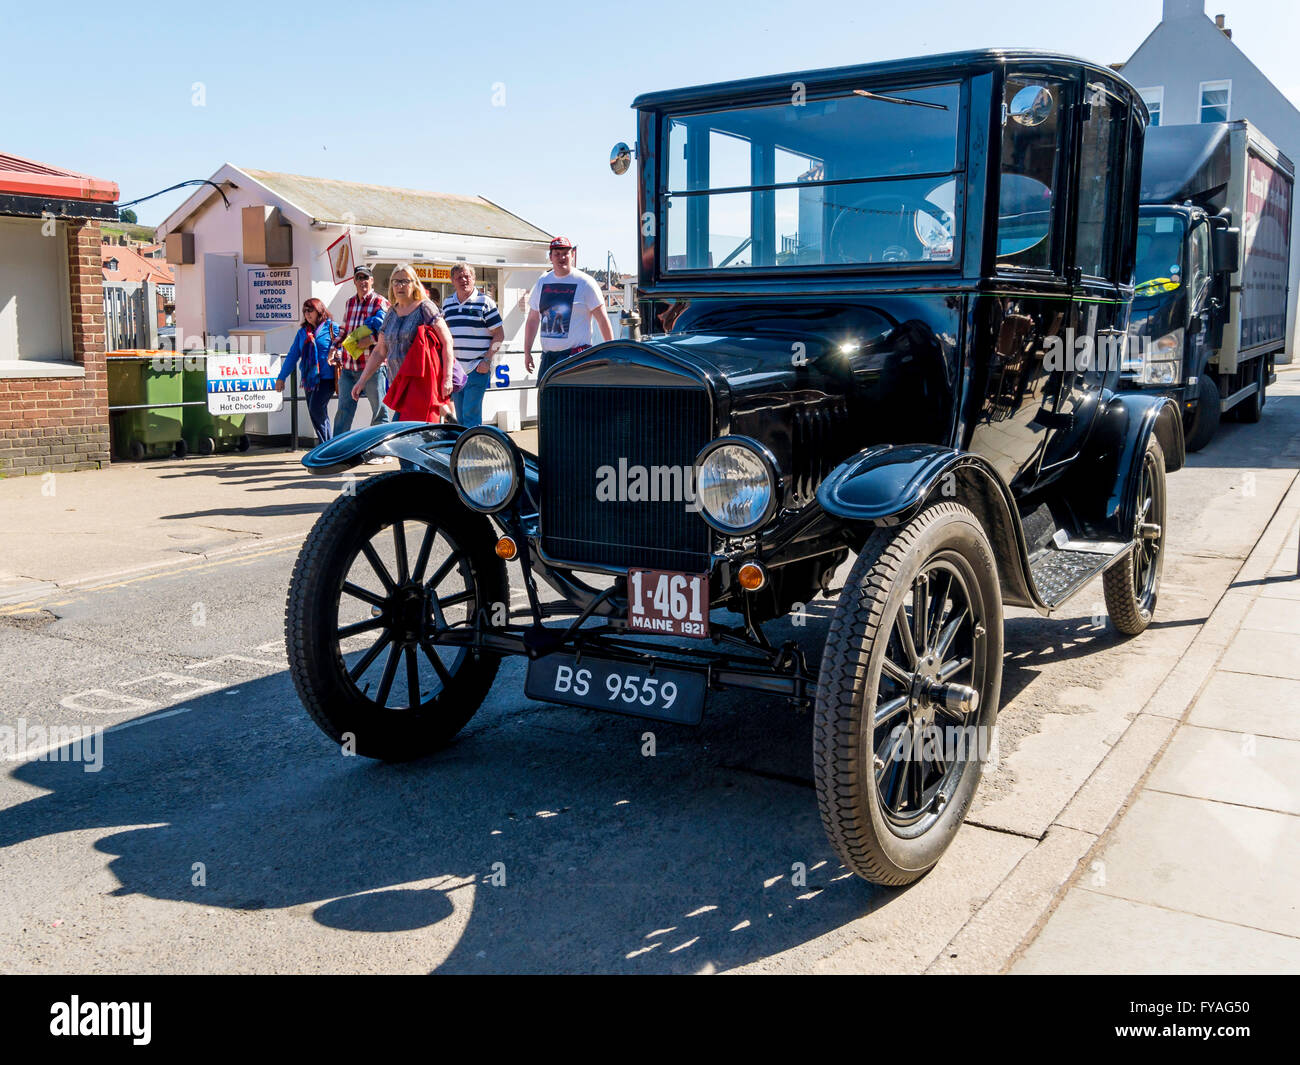 A rare 1921 ford model t centerdoor sedan parked in whitby north yorkshire england uk